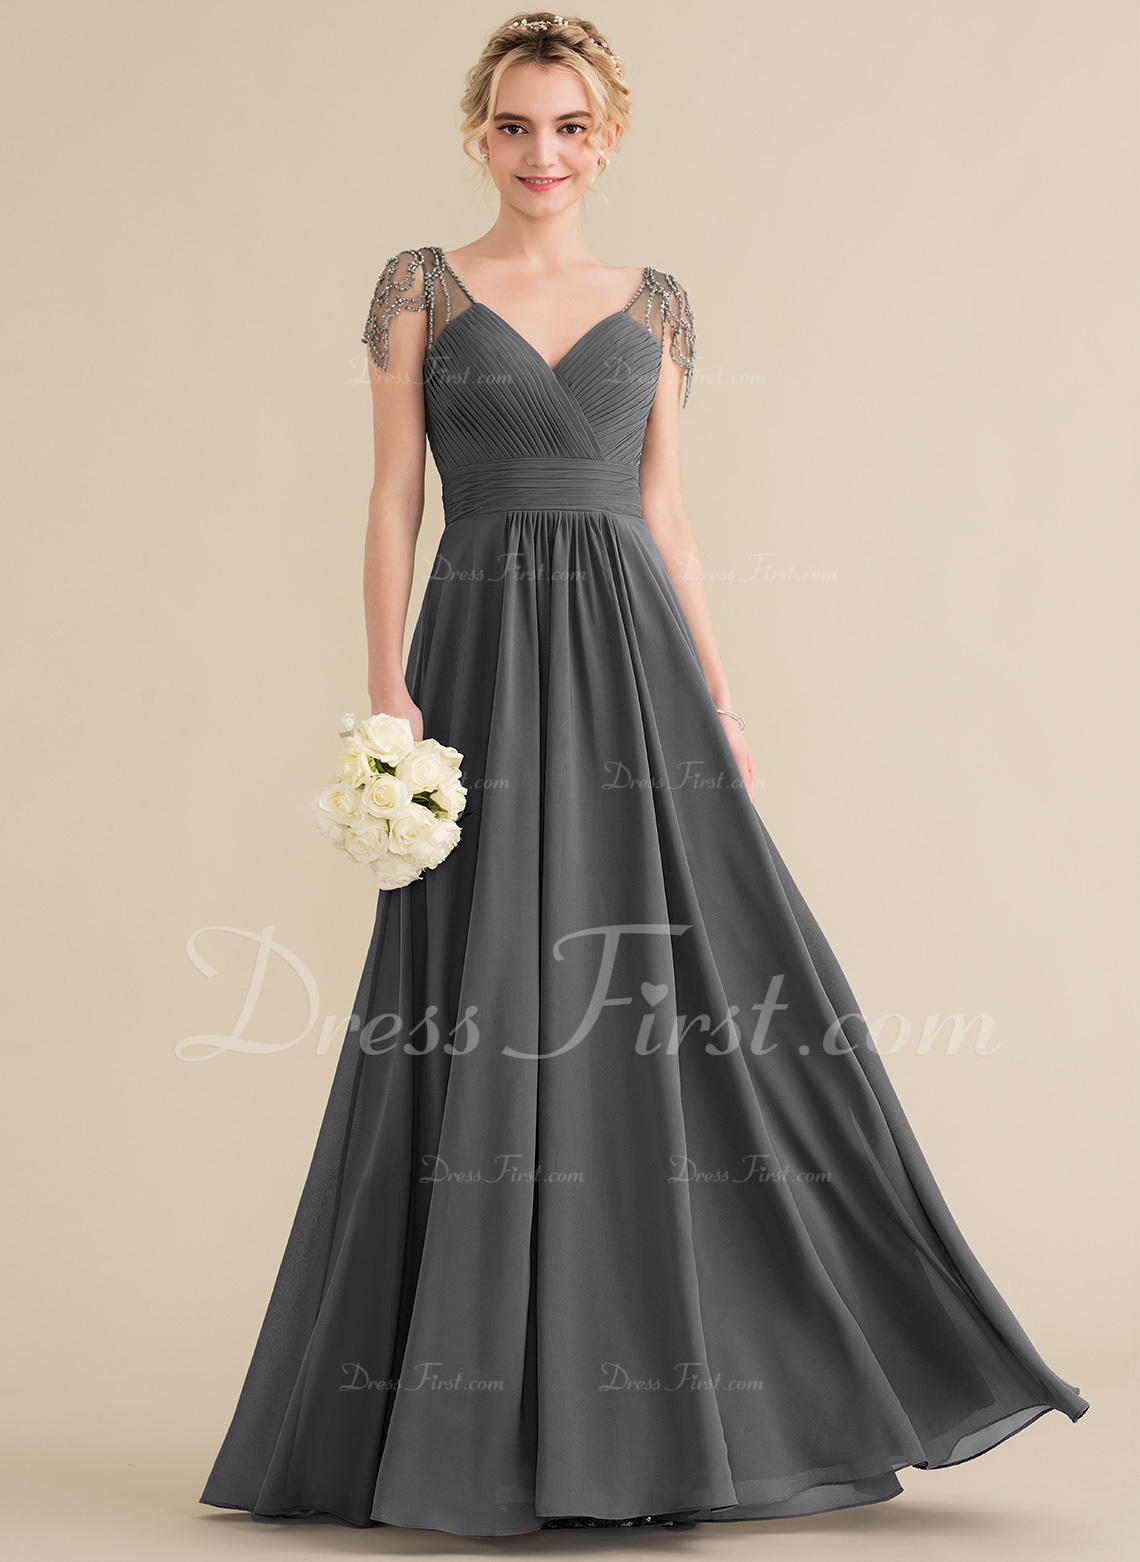 1a114ae28cf Loading zoom. Loading. Color  Steel Grey. A-Line Princess V-neck Floor-Length  Chiffon Bridesmaid Dress With Ruffle Beading ...